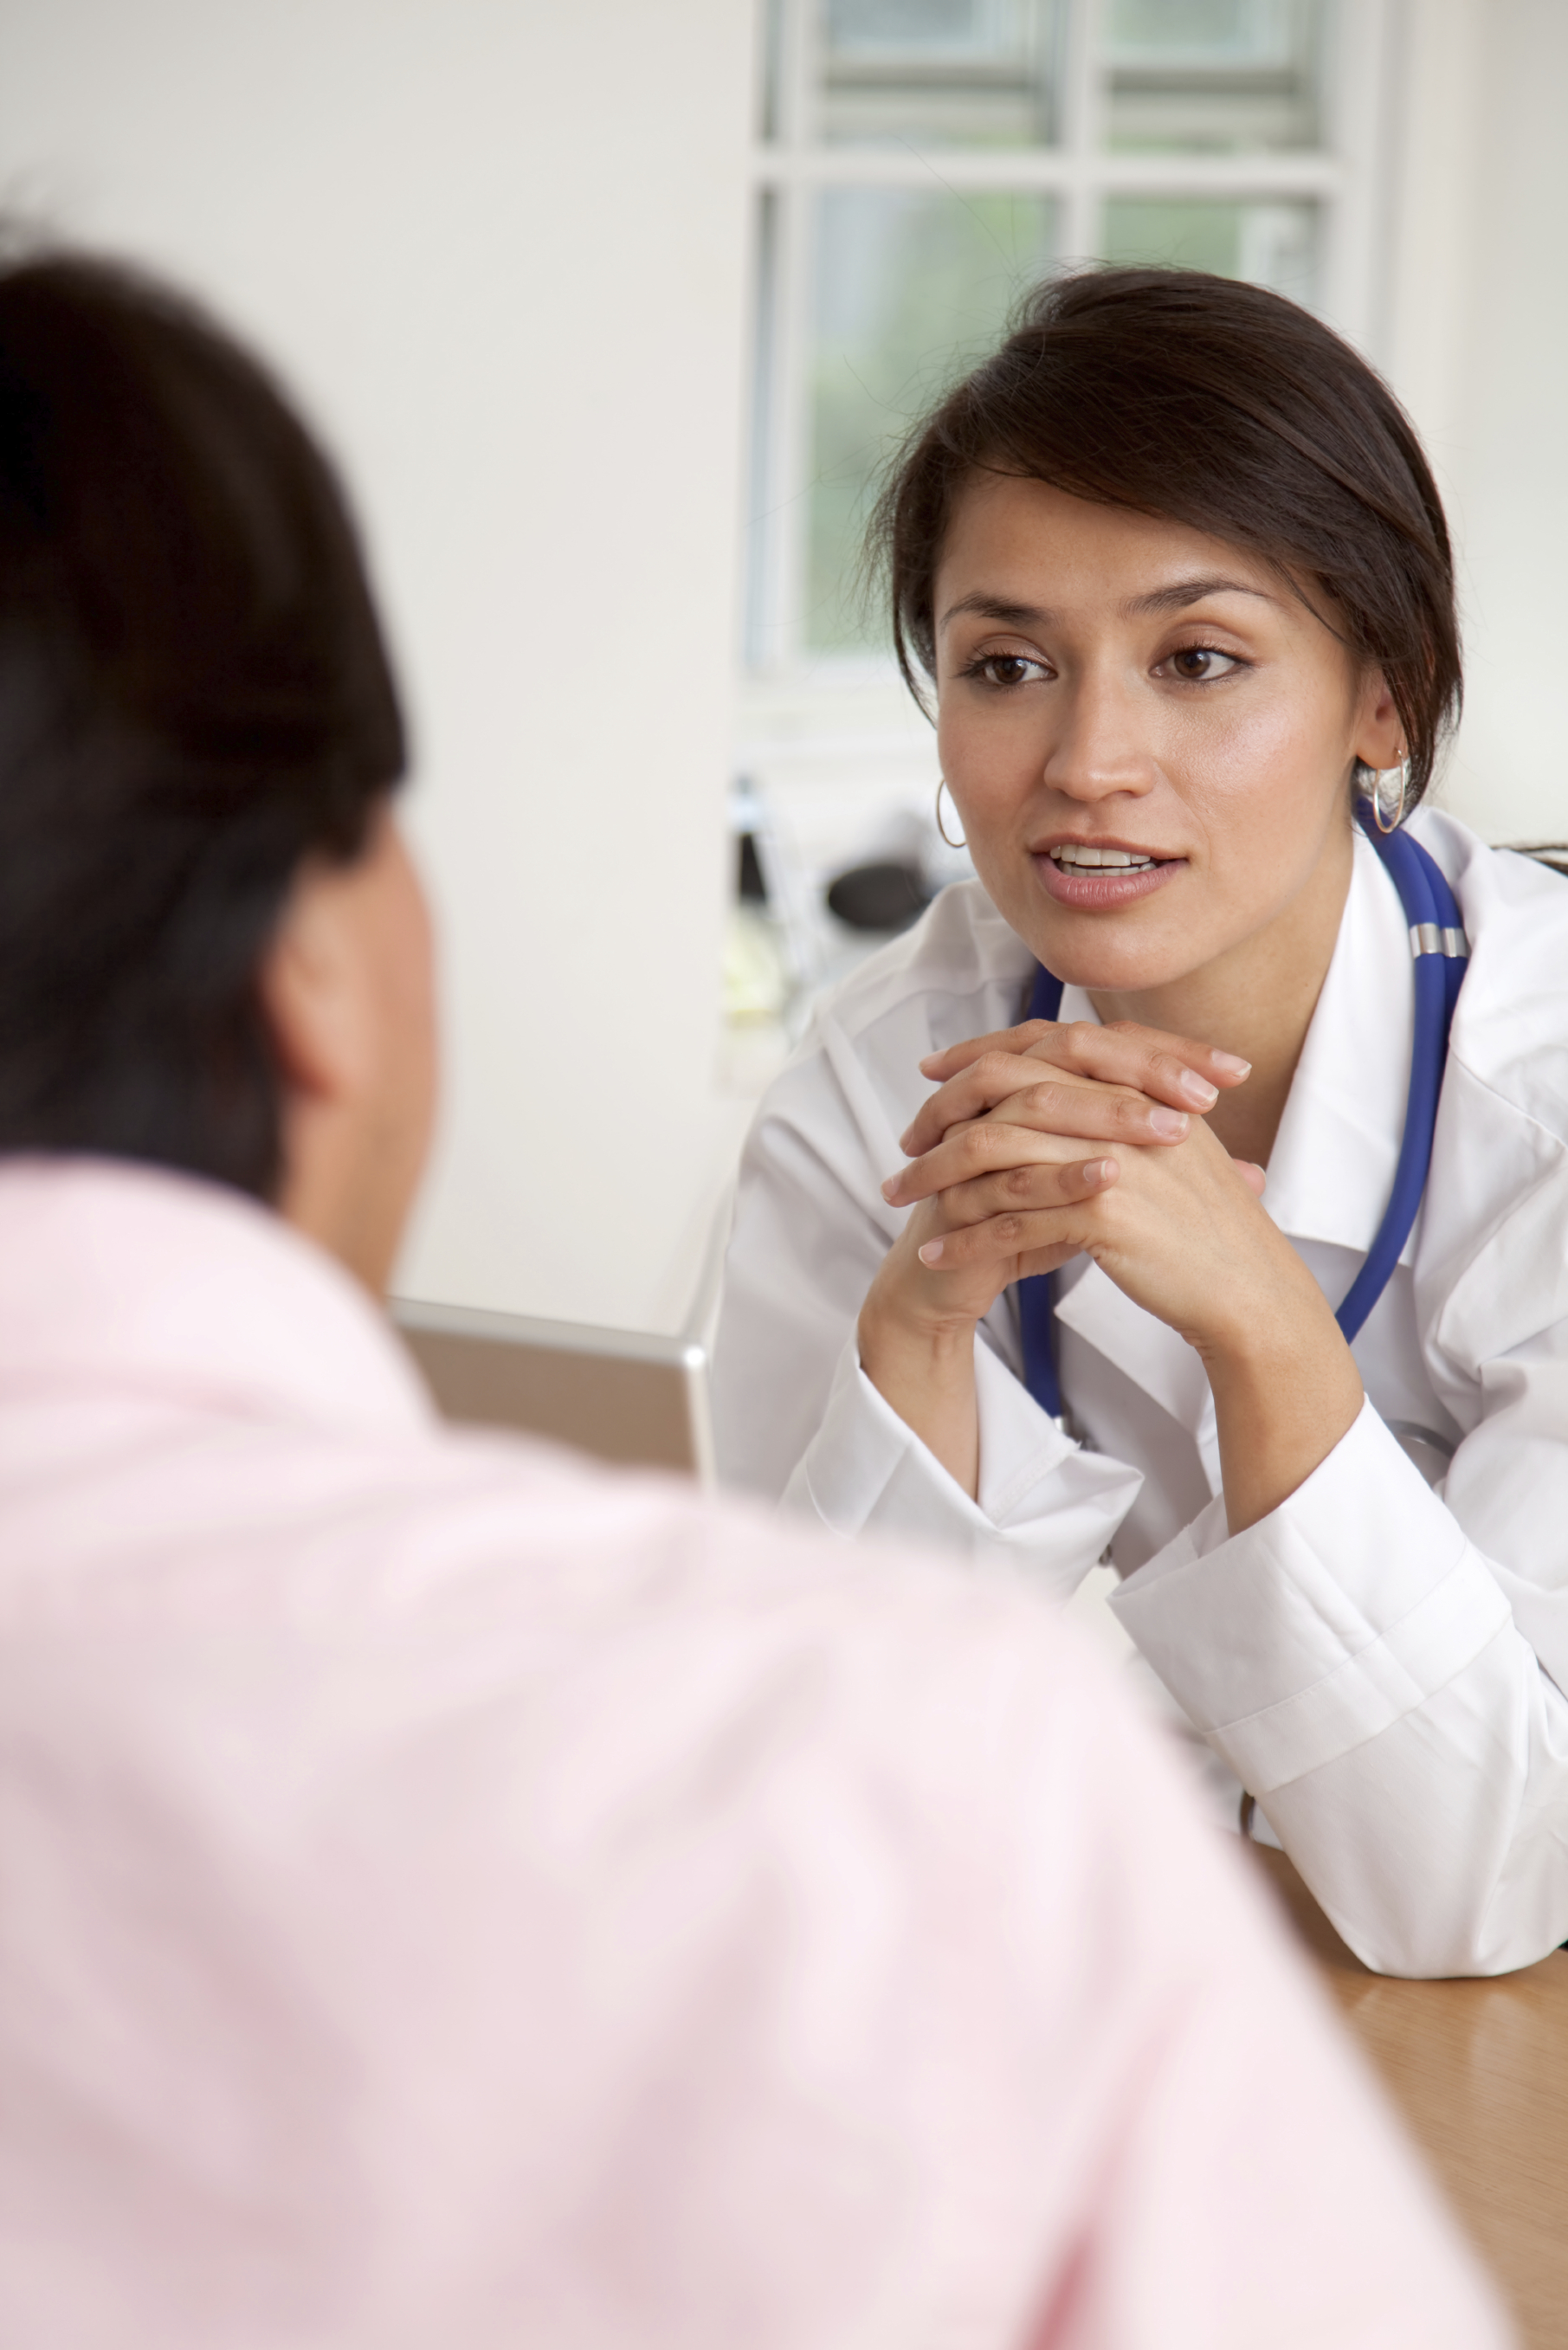 doctor and patient engaging relationship